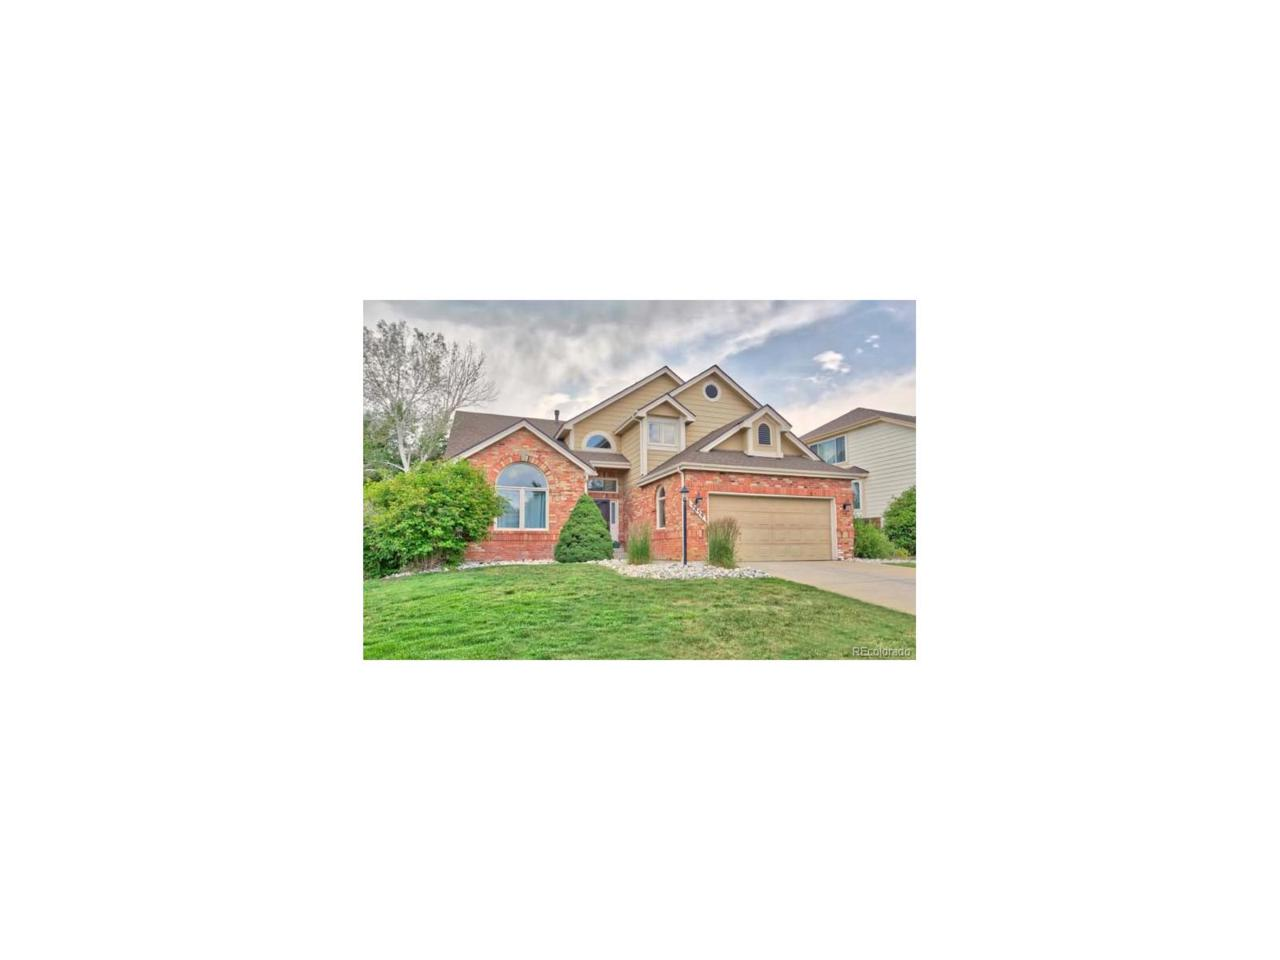 5859 S Danube Circle, Aurora, CO 80015 (MLS #1629532) :: 8z Real Estate